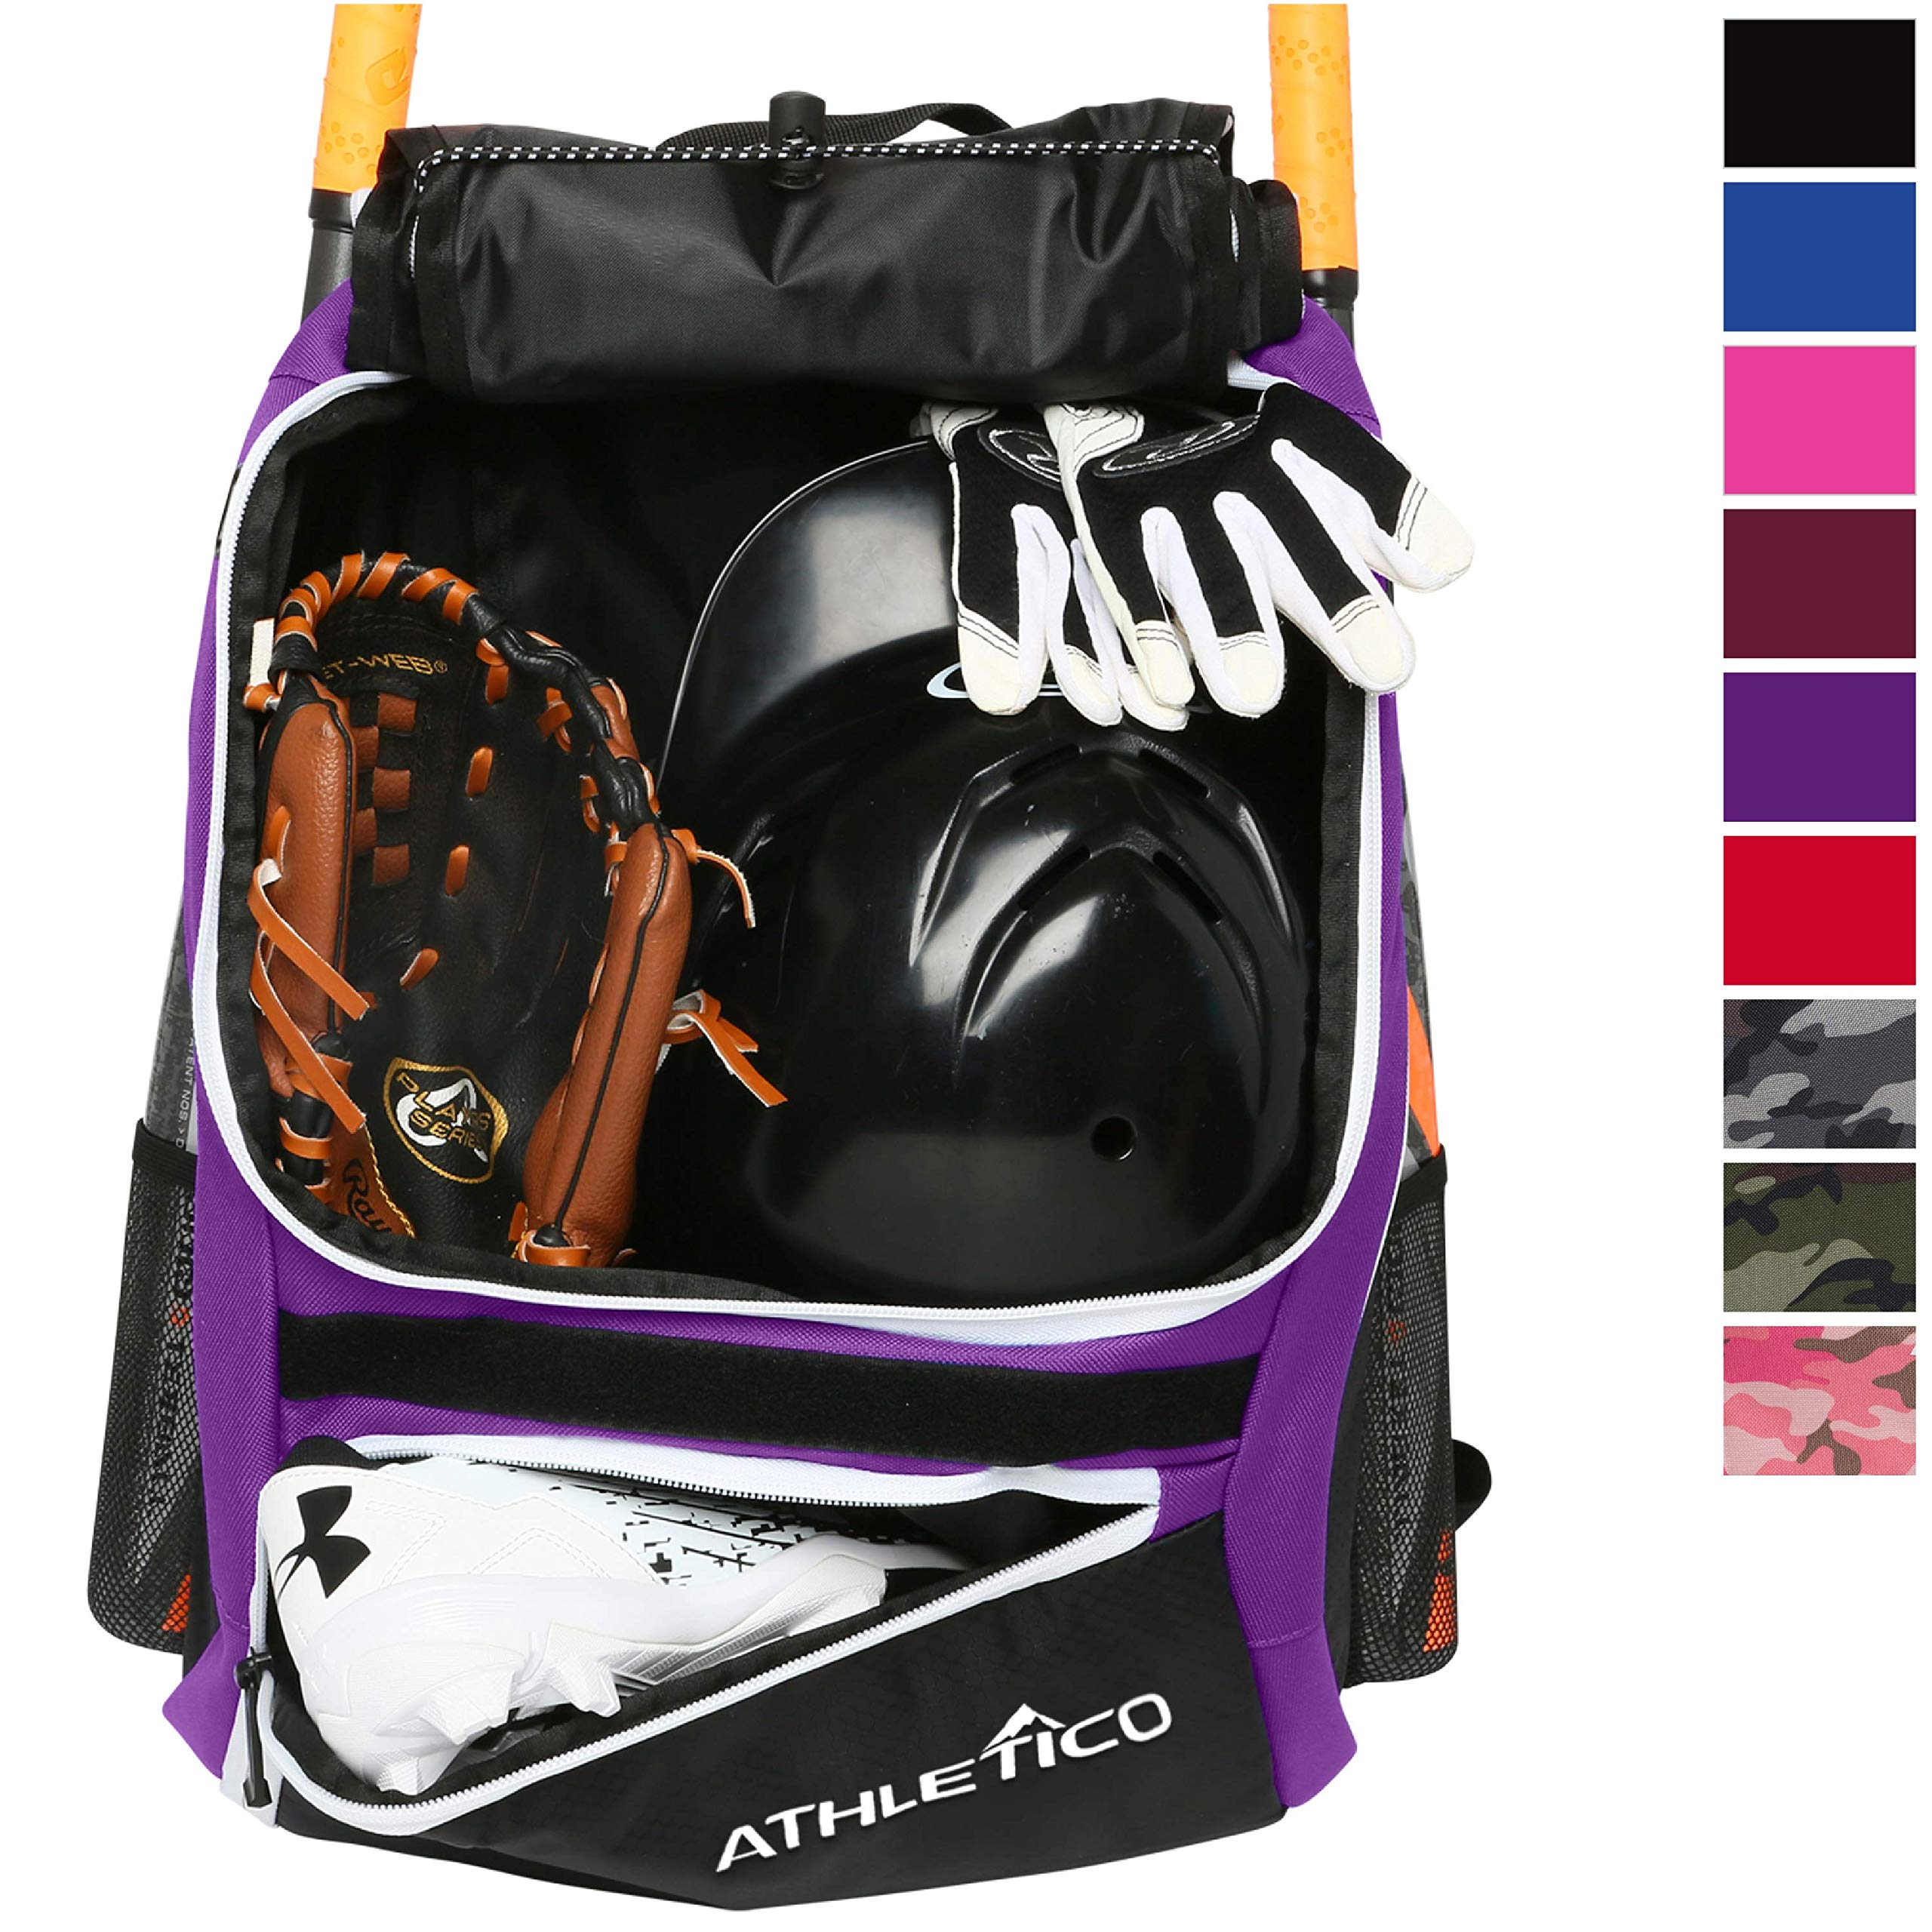 Athletico Baseball Bat Bag - Backpack for Baseball, T-Ball & Softball Equipment & Gear for Youth and Adults | Holds Bat, Helmet, Glove, Shoes |Shoe Compartment & Fence Hook (Purple) by Athletico